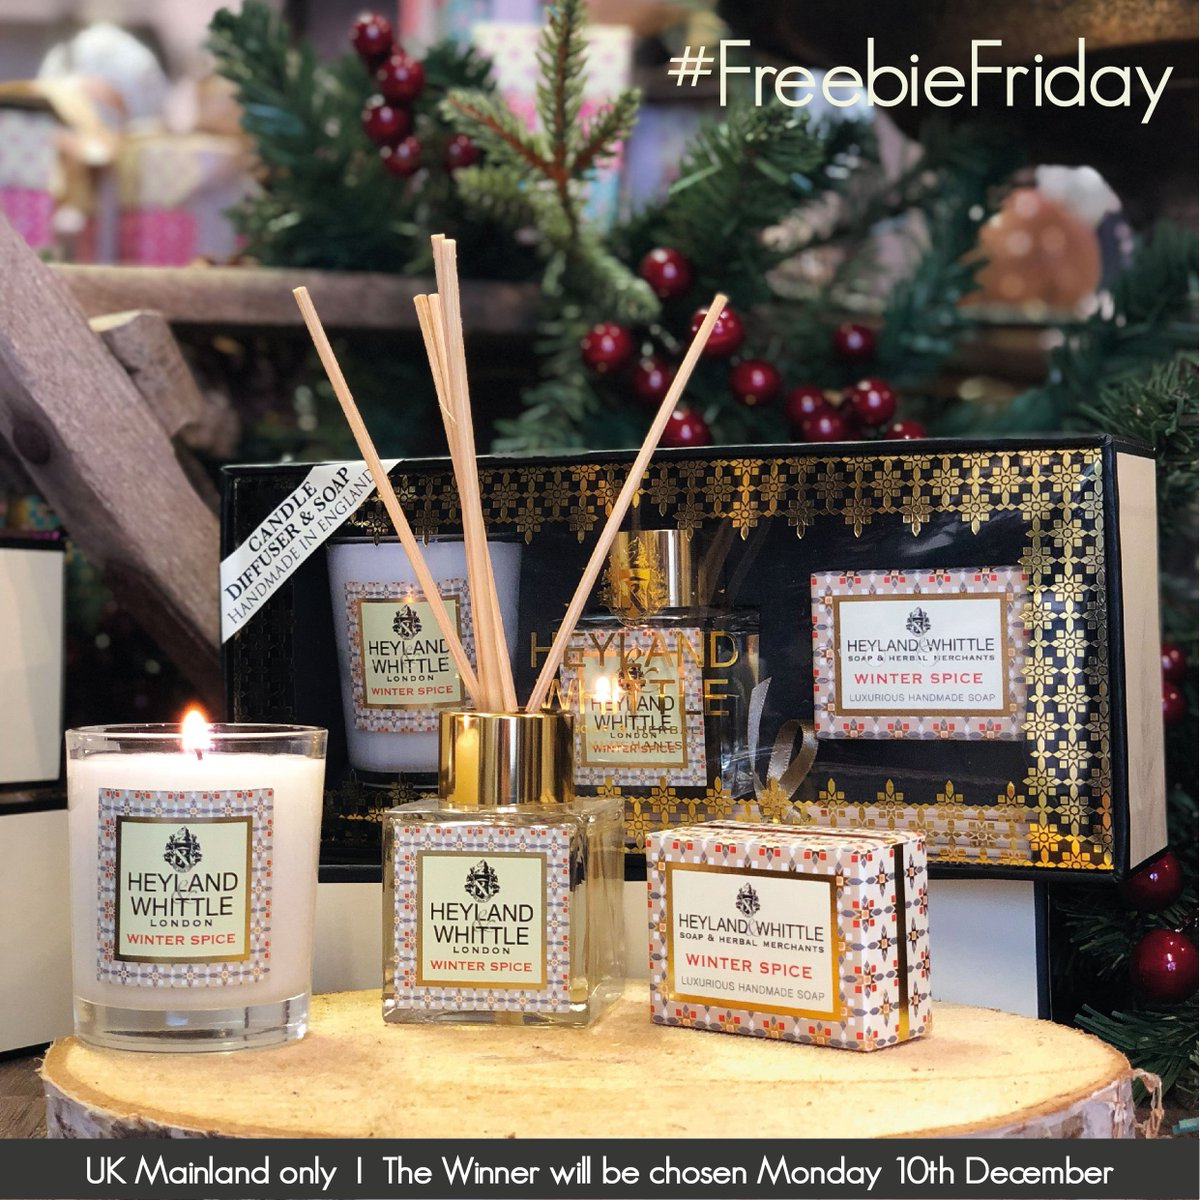 Happy #FreebieFriday! For you and your friend we are giving away 2 Winter Spice Gift Boxes. To enter, like this post and tag a friend. Best of luck to all! #LikeToWin #Giveaway #HomeFragrance #TagAFriend #Competition #CompetitionTime #GiftIdeas #GiftForEveryone #RoomScent<br>http://pic.twitter.com/zQA8A9kTSI